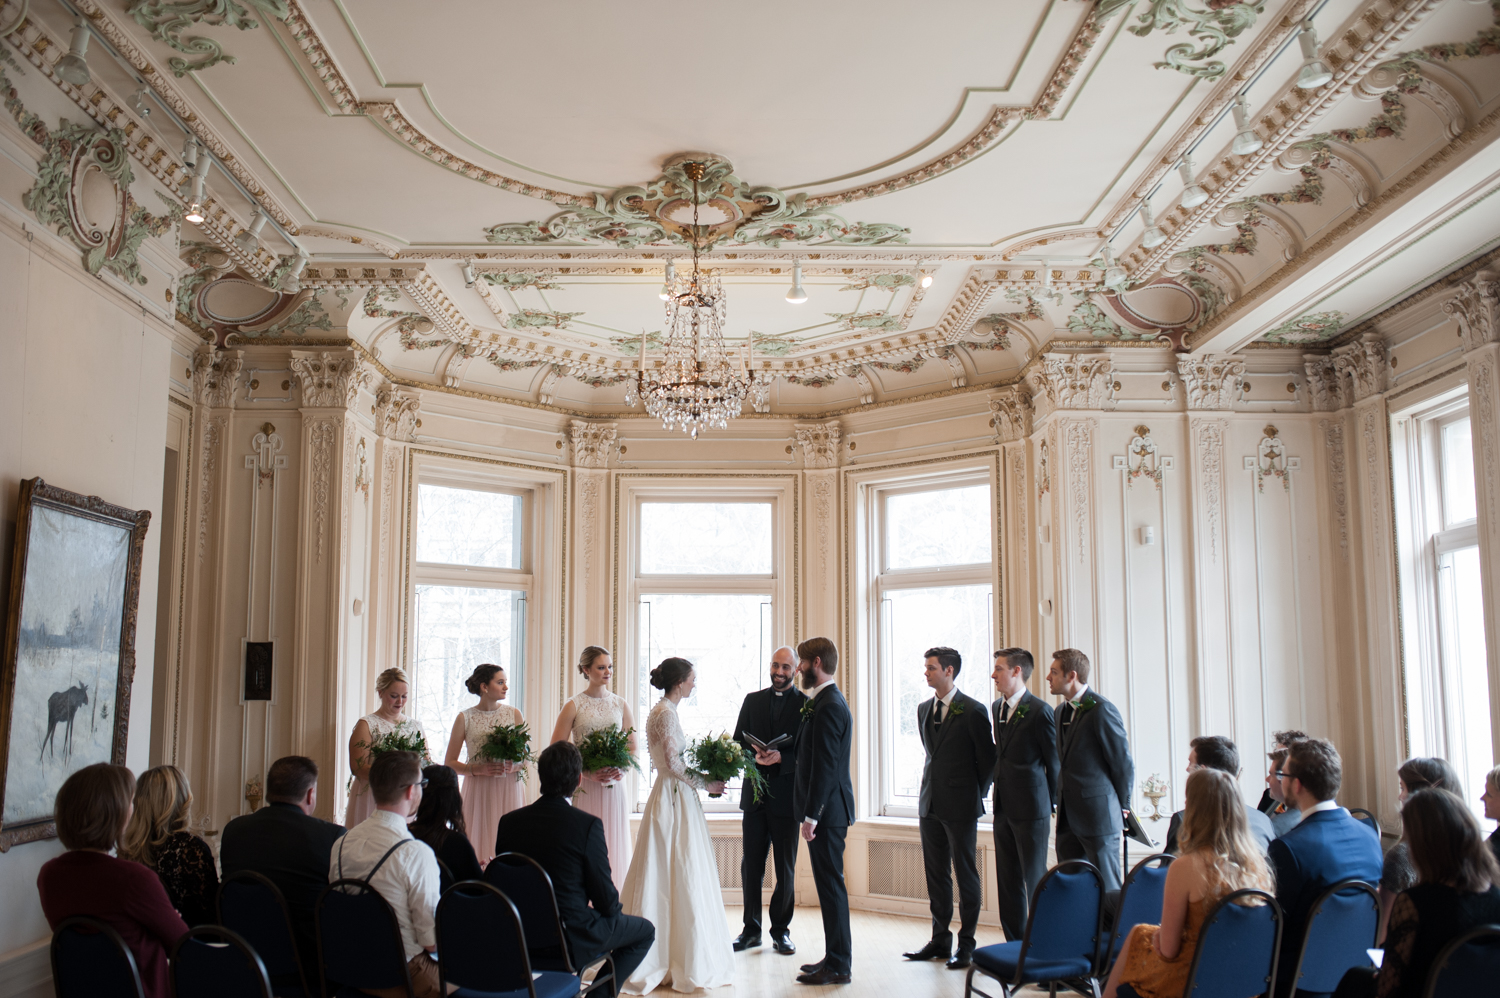 american_swedish_institute_wedding_large_windows_fancy_white_ceilings_with_gold_and_green_trim.jpeg